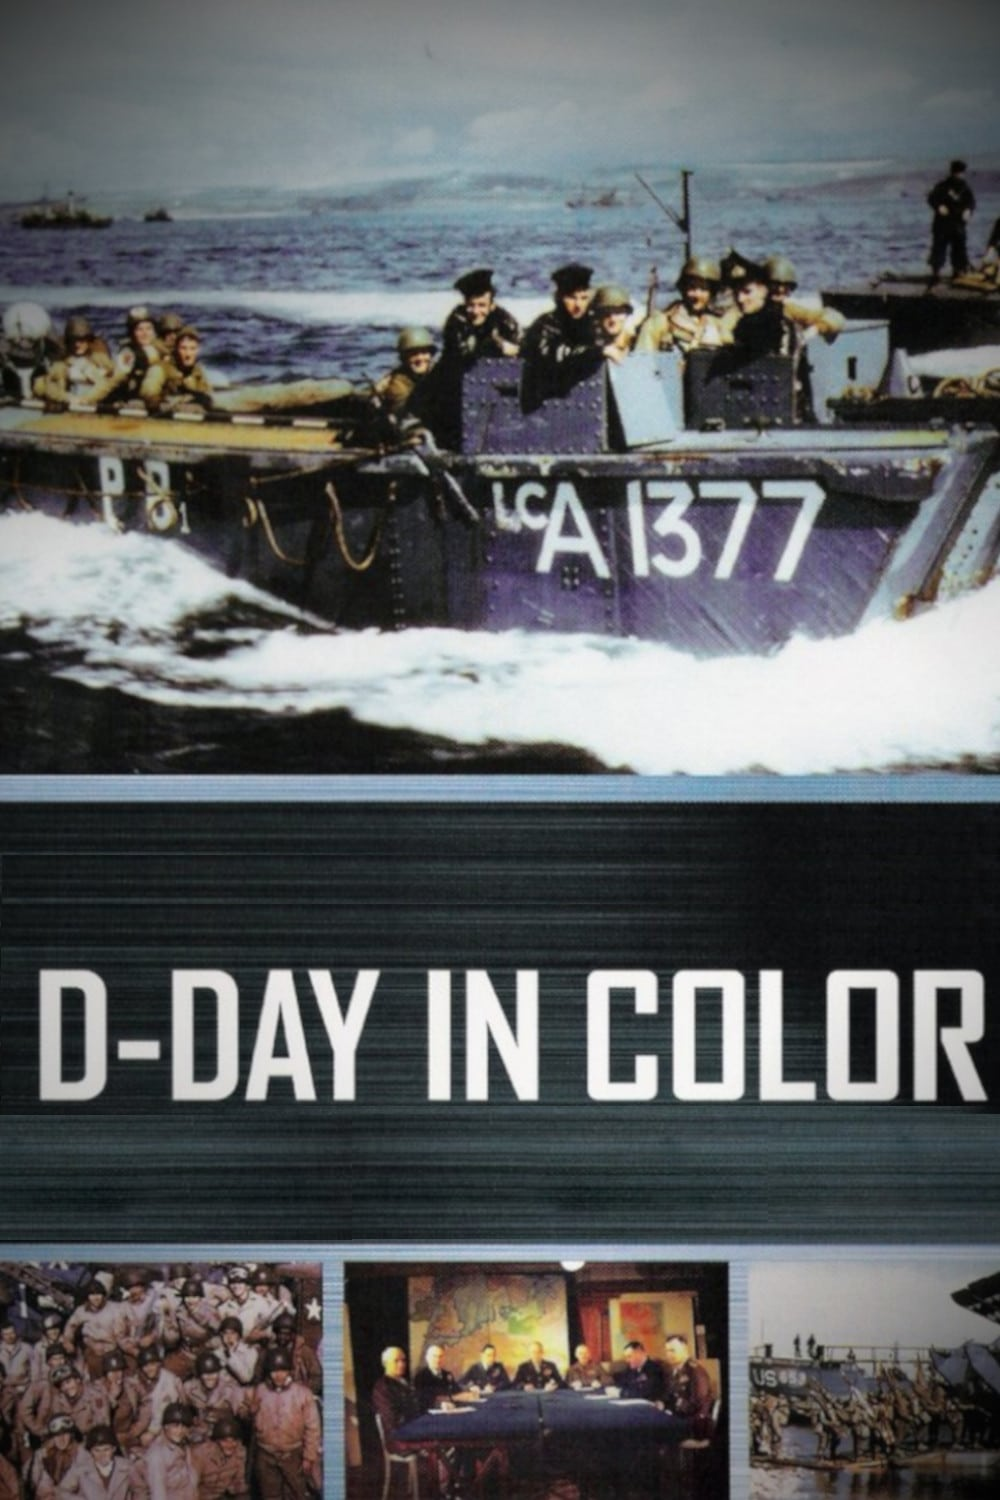 D-Day in Colour